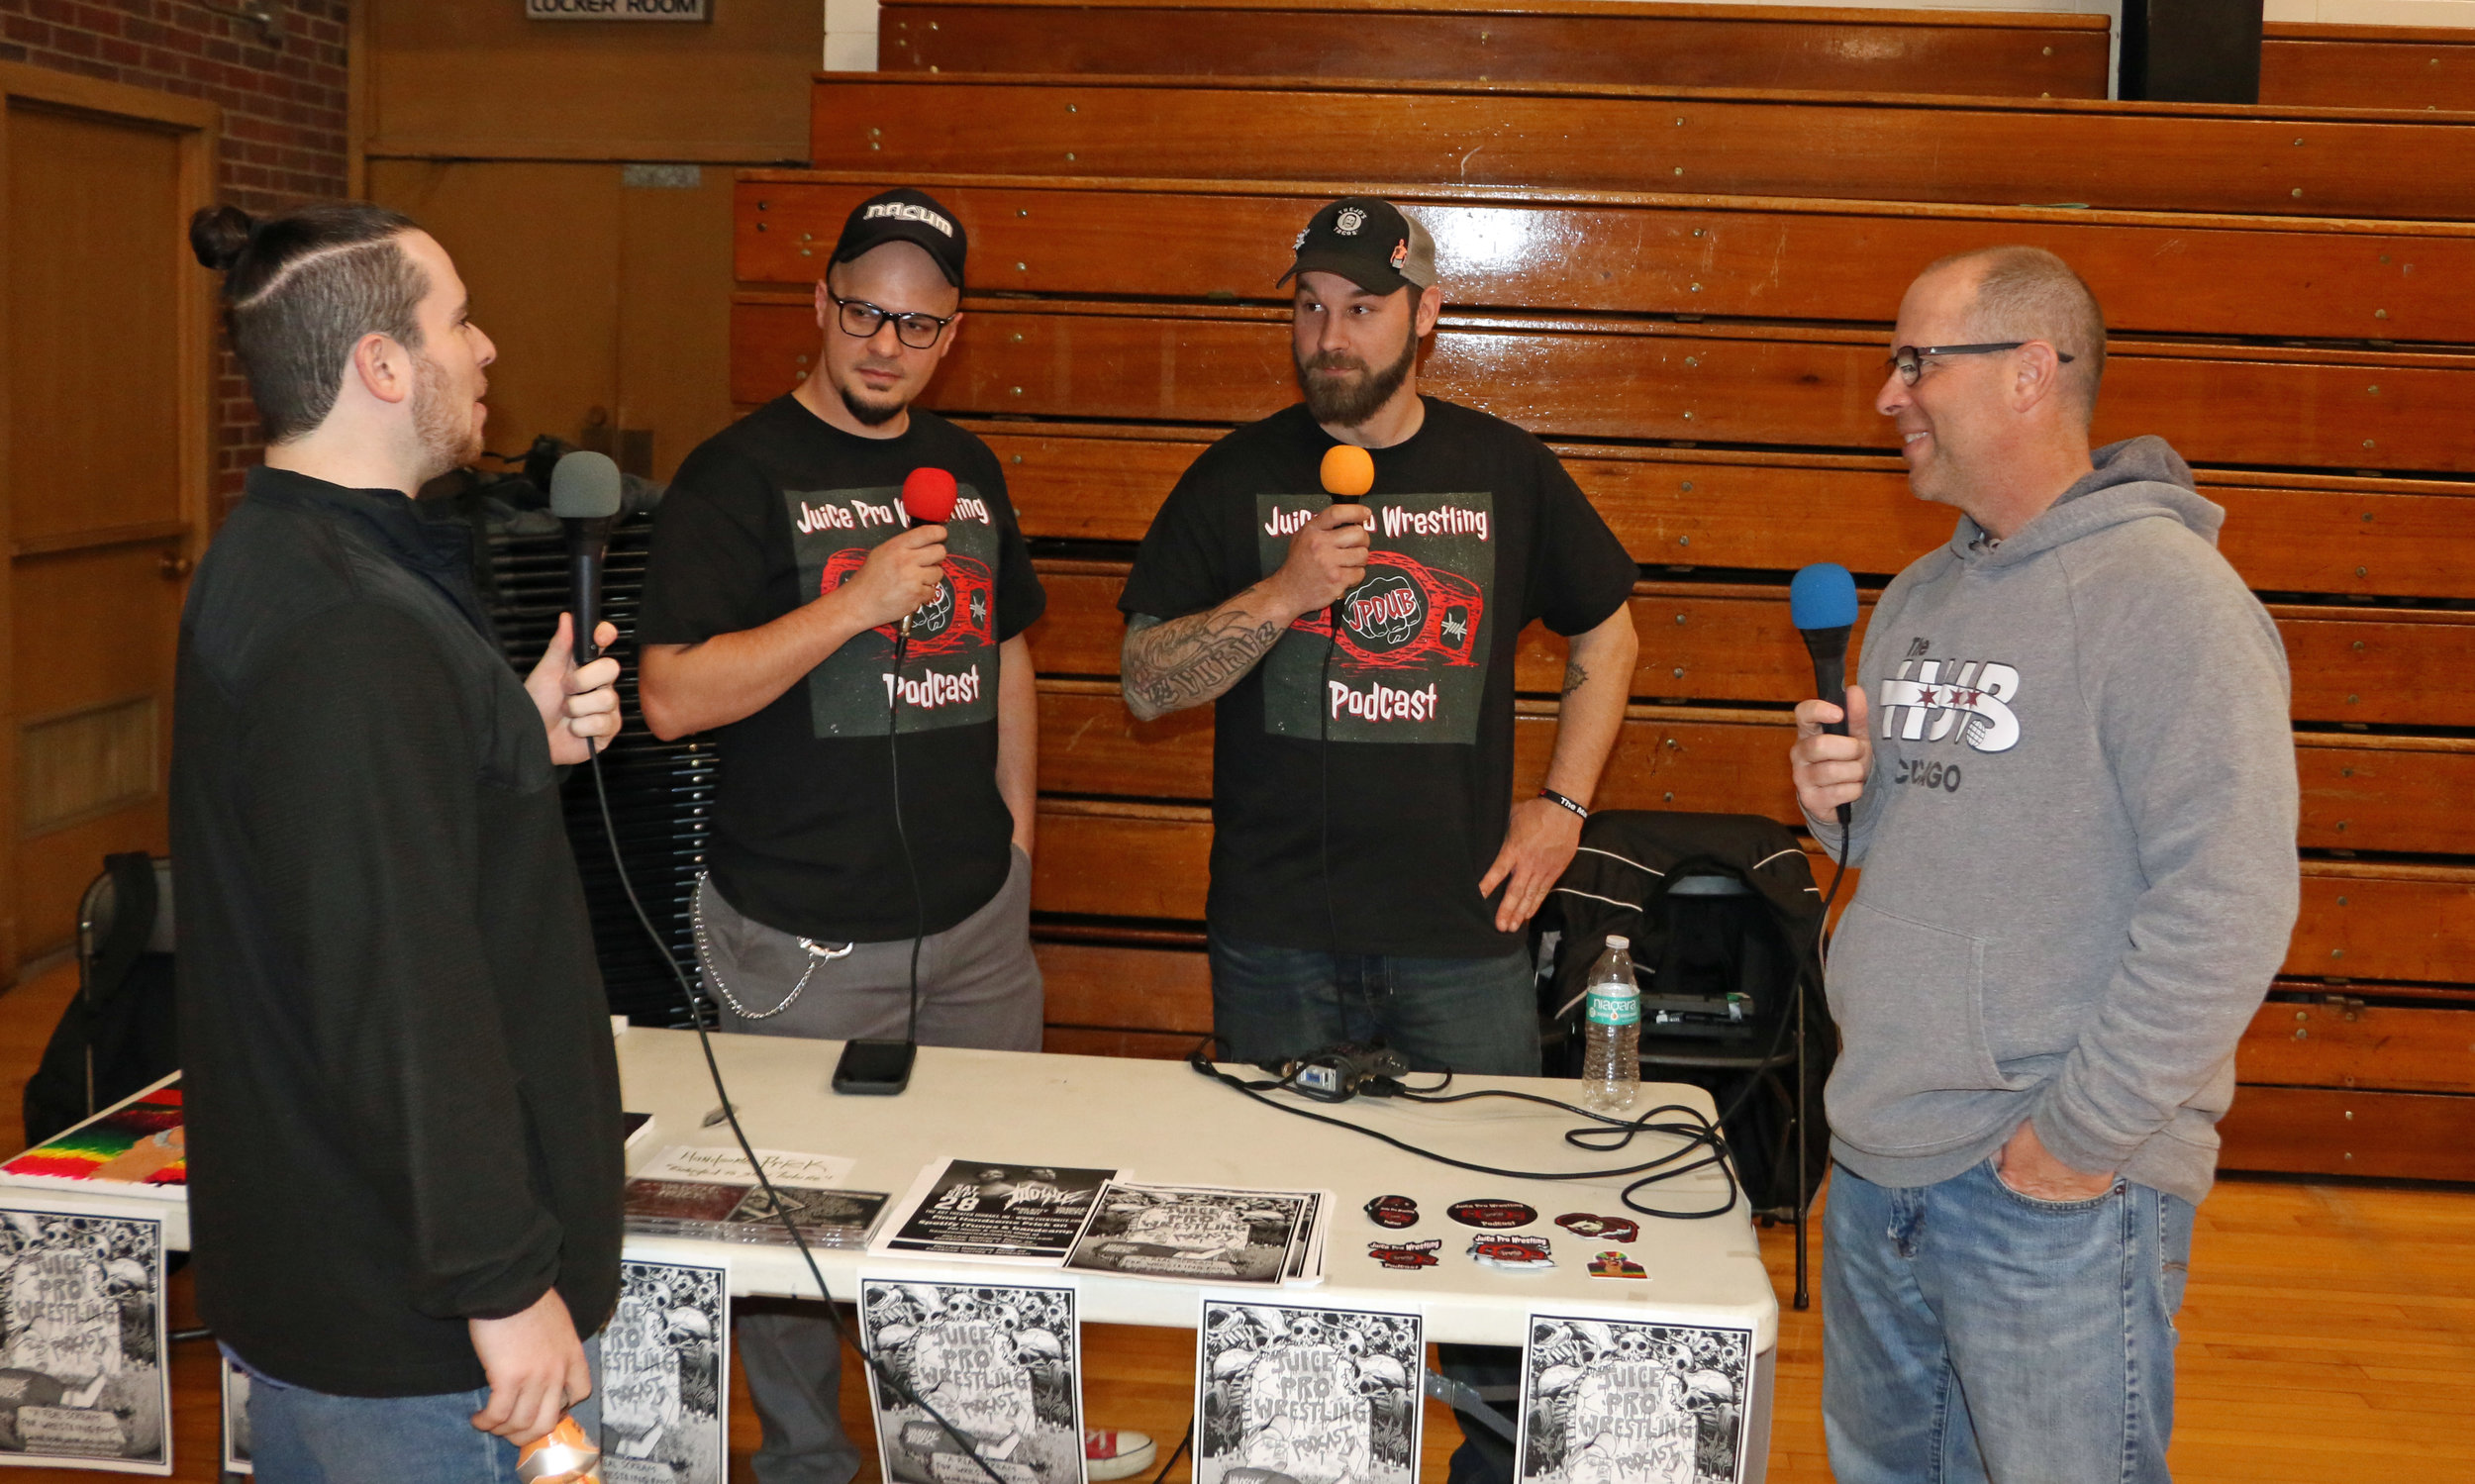 Interaction at the Juice Pro Wrestling Podcast during the Warrior Wrestling 5 VIP Fan Fest.